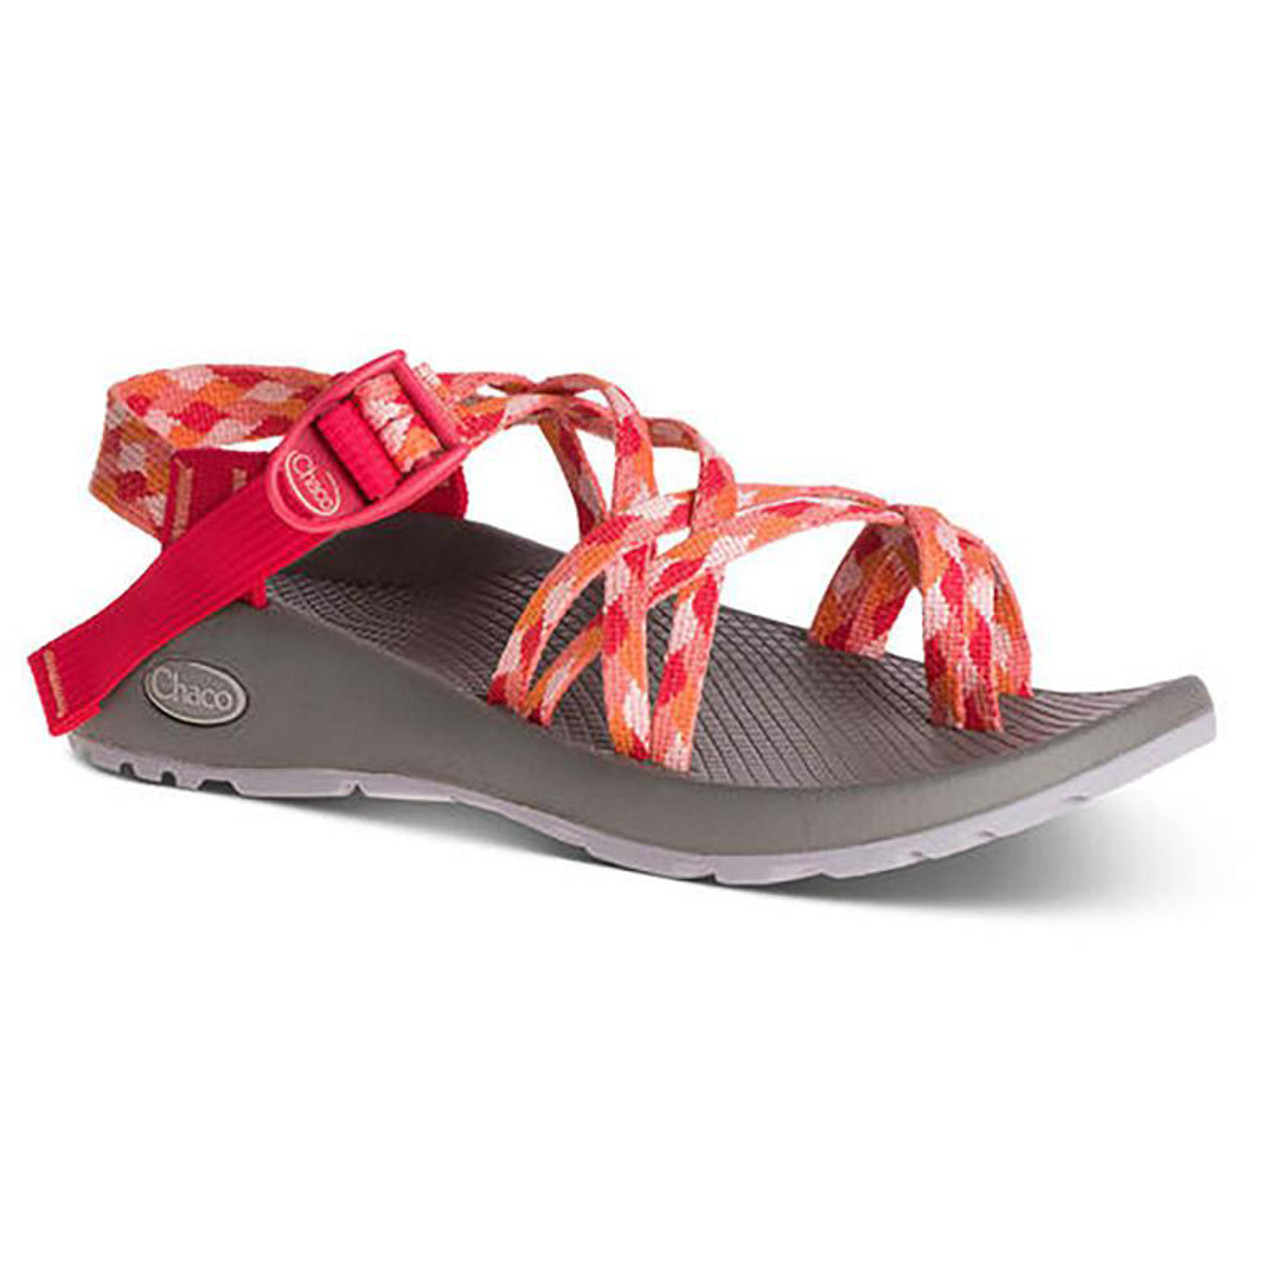 4a7f3c097cd0 Chaco Women s Sandal - ZX 2 Classic - Quilt Peach - Surf and Dirt